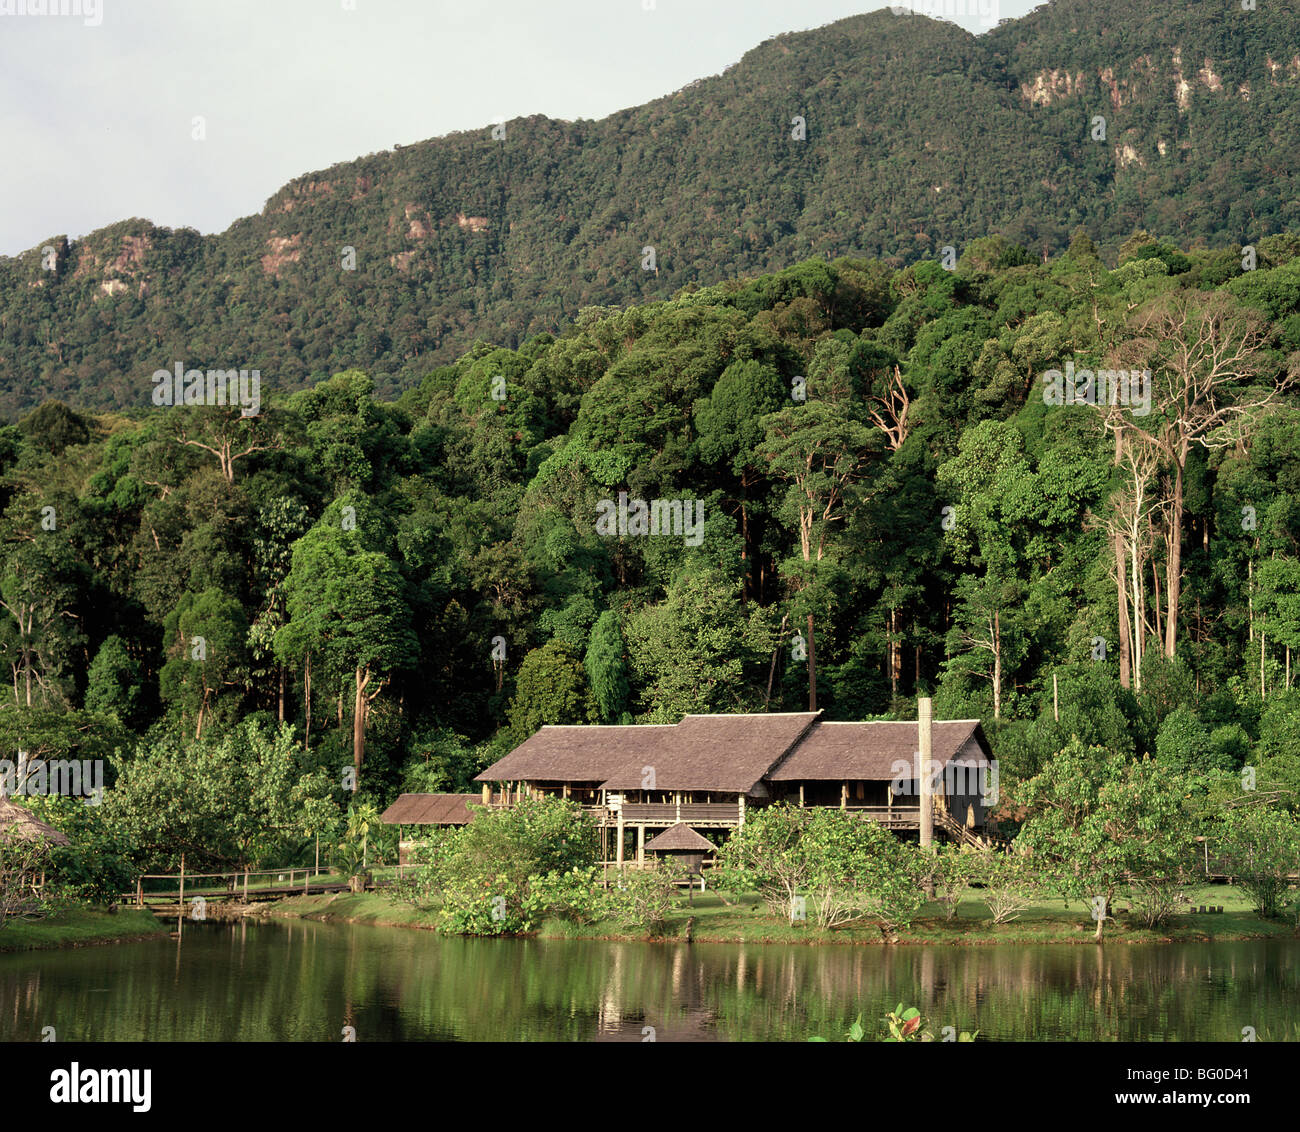 Orang Ulu longhouse sits amidst the immense forest in Sarawak, Borneo, Malaysia, Southeast Asia, Asia - Stock Image